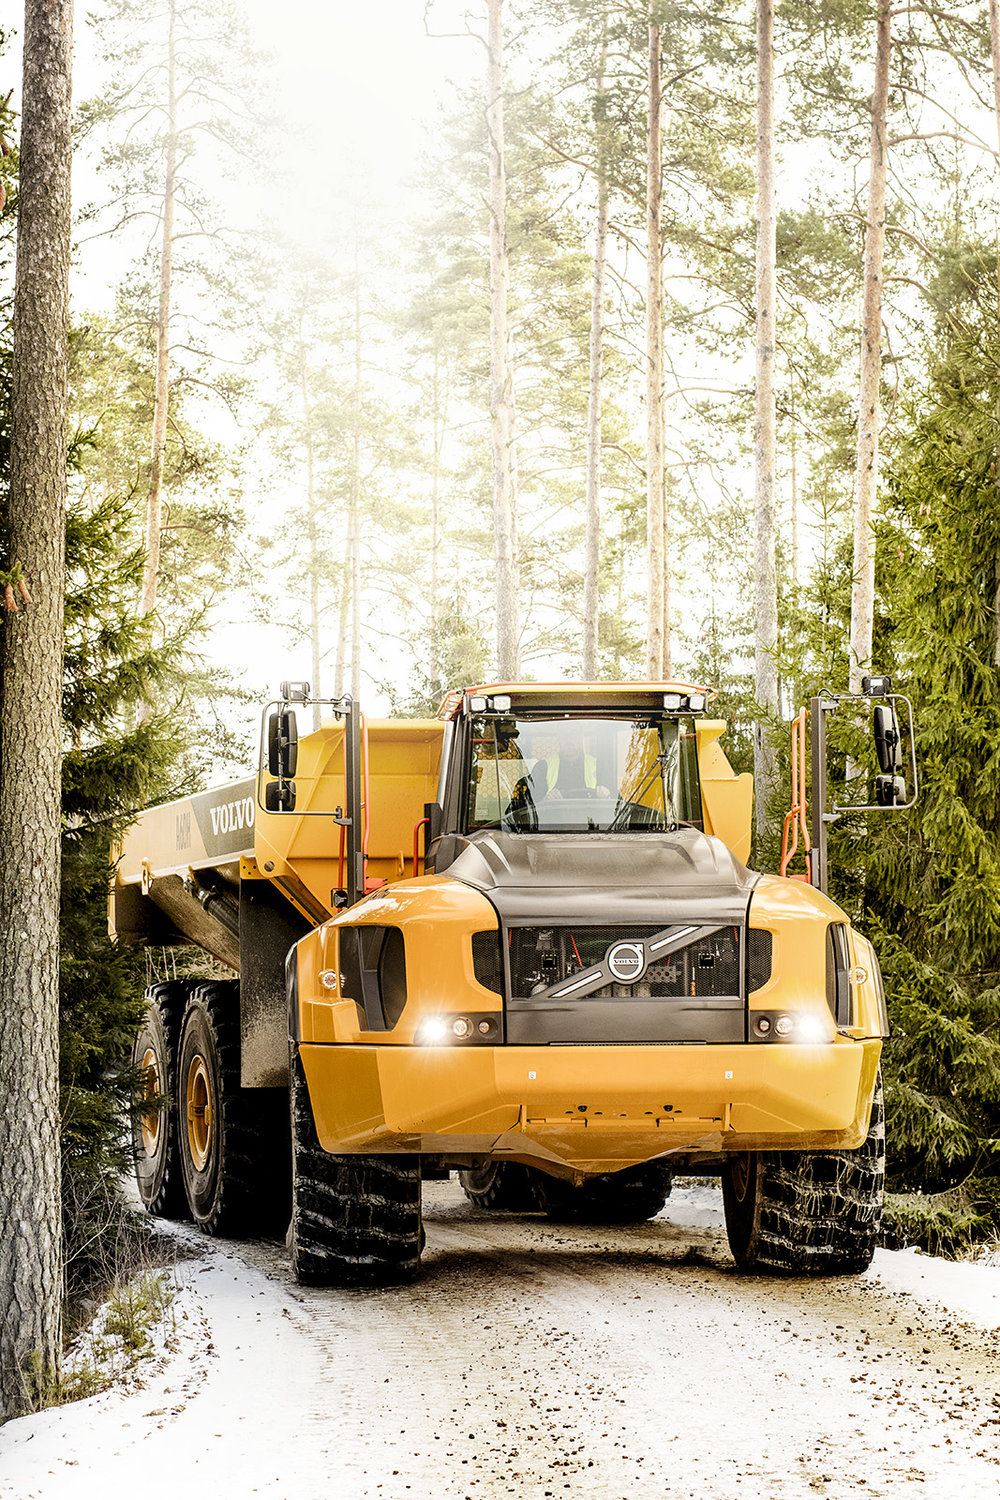 19-02-2016. Barås.The brand new Articulated Hauler. The team at Volvo Construction Equipment in Braås is trying the machine out at their testing fleld, tweaking it and building demos in the factory.Foto: Gustav Mårtensson